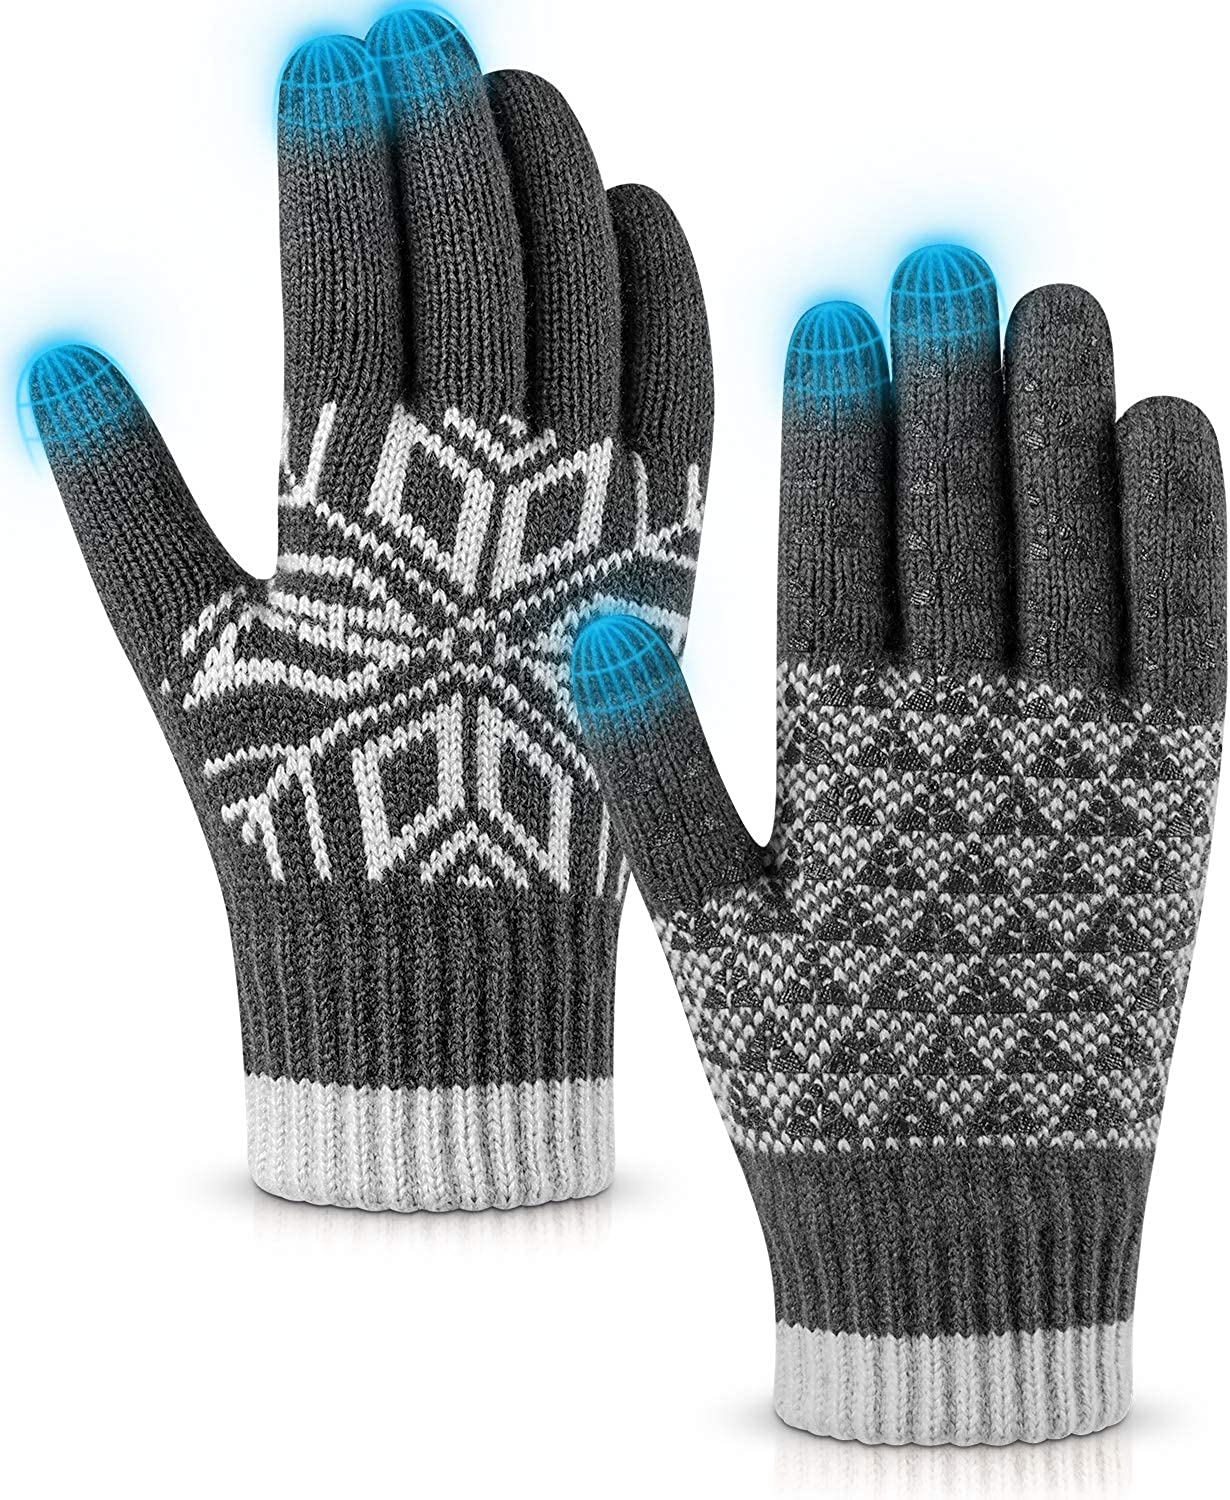 Pvendor Winter Gloves Touch Screen Warm Knit Gloves, Soft Wool Lining Elastic Cuff, Anti-Slip Rubber Design Warm Gloves for Men Women : Clothing